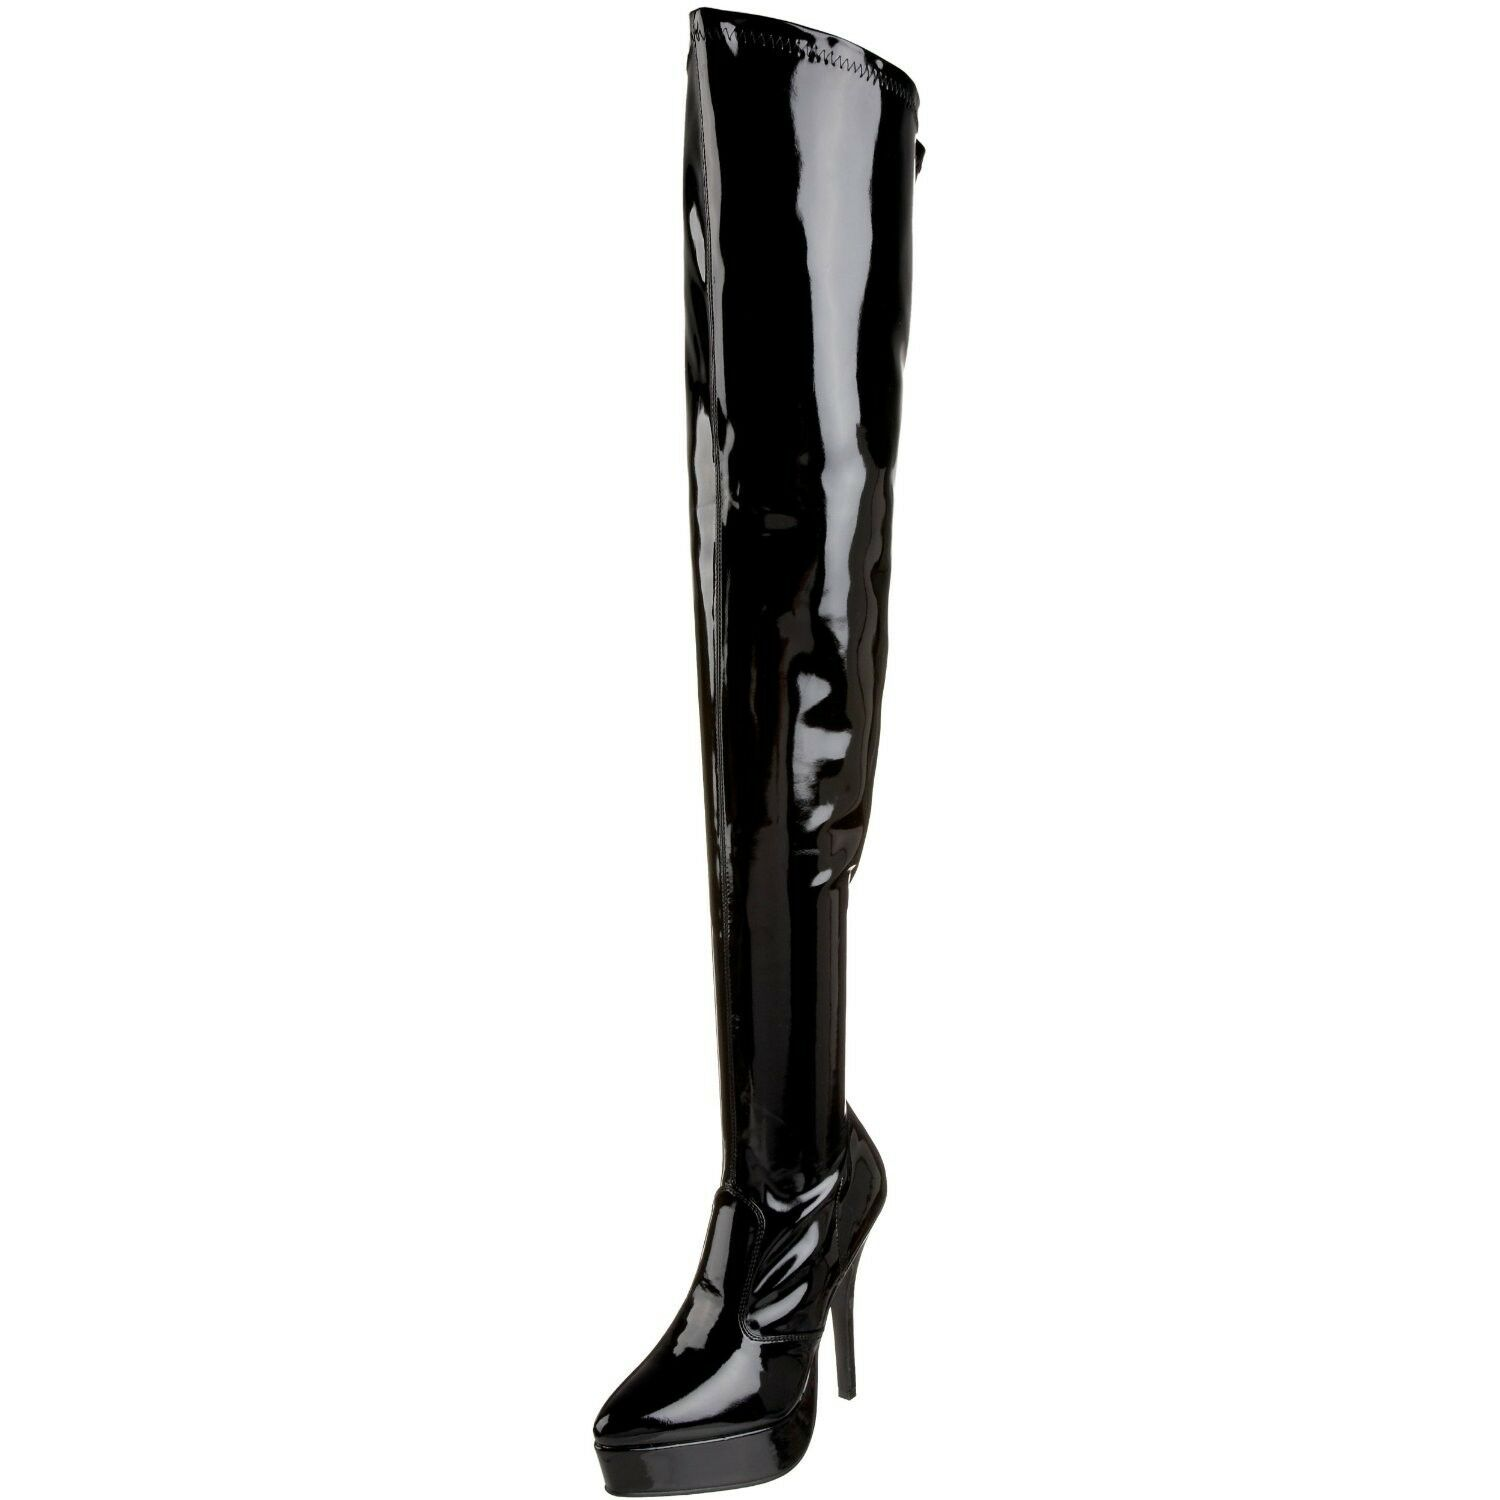 Pleaser Indulge-1026 1028 2033 3000 3011 3063 Sexy Stiefel Thigh/Knee/Ankle